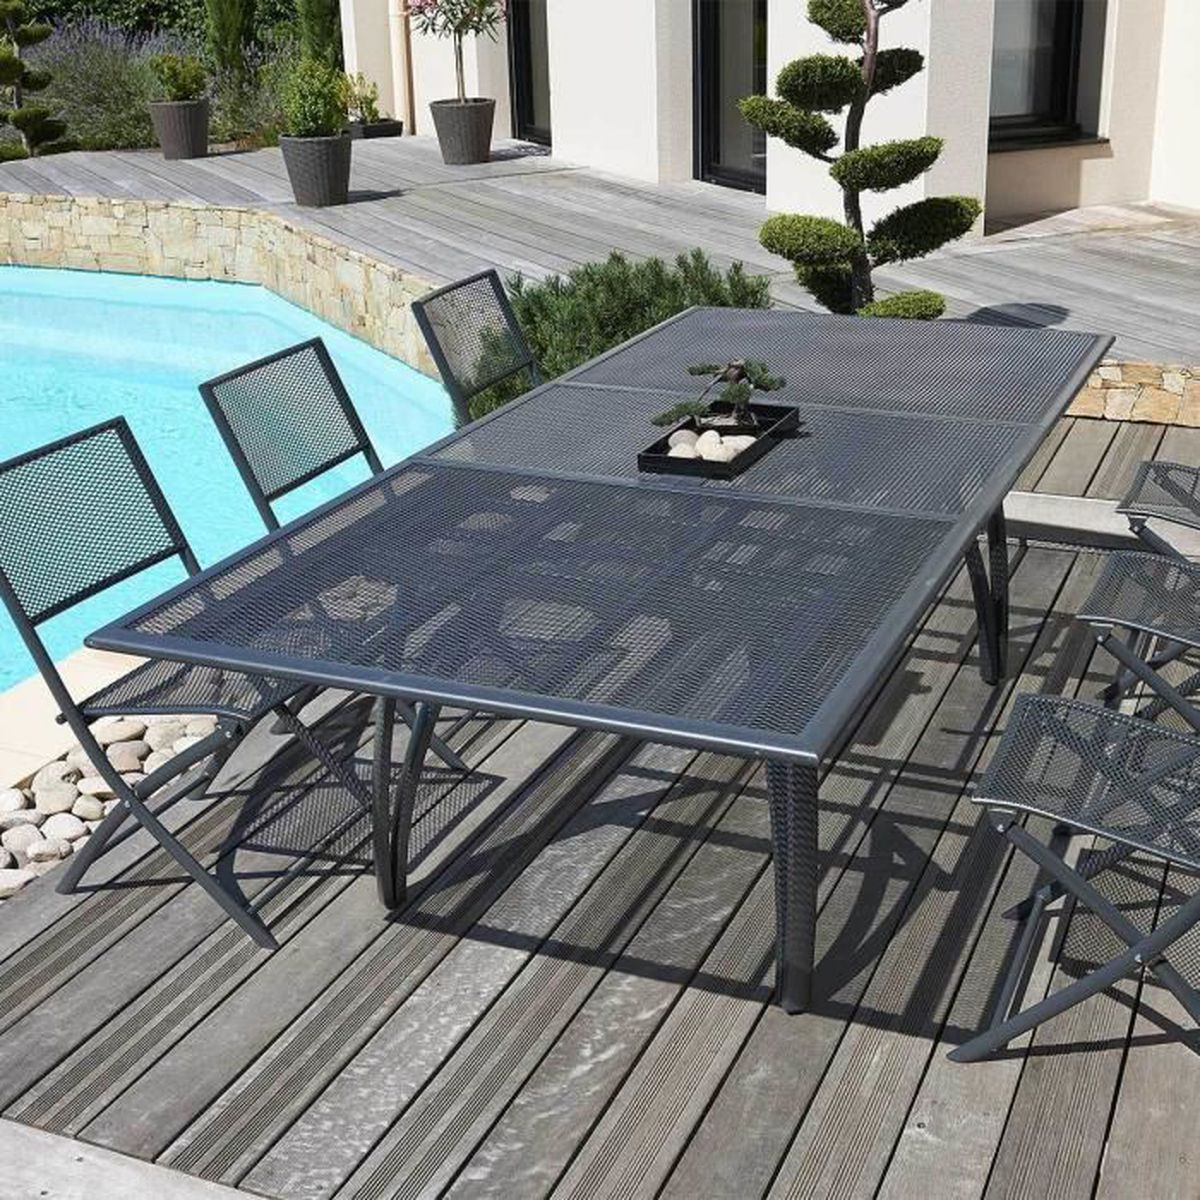 Ensemble de Jardin Alu Perforé 1 Table + 6 Fauteuils Anthracite ...